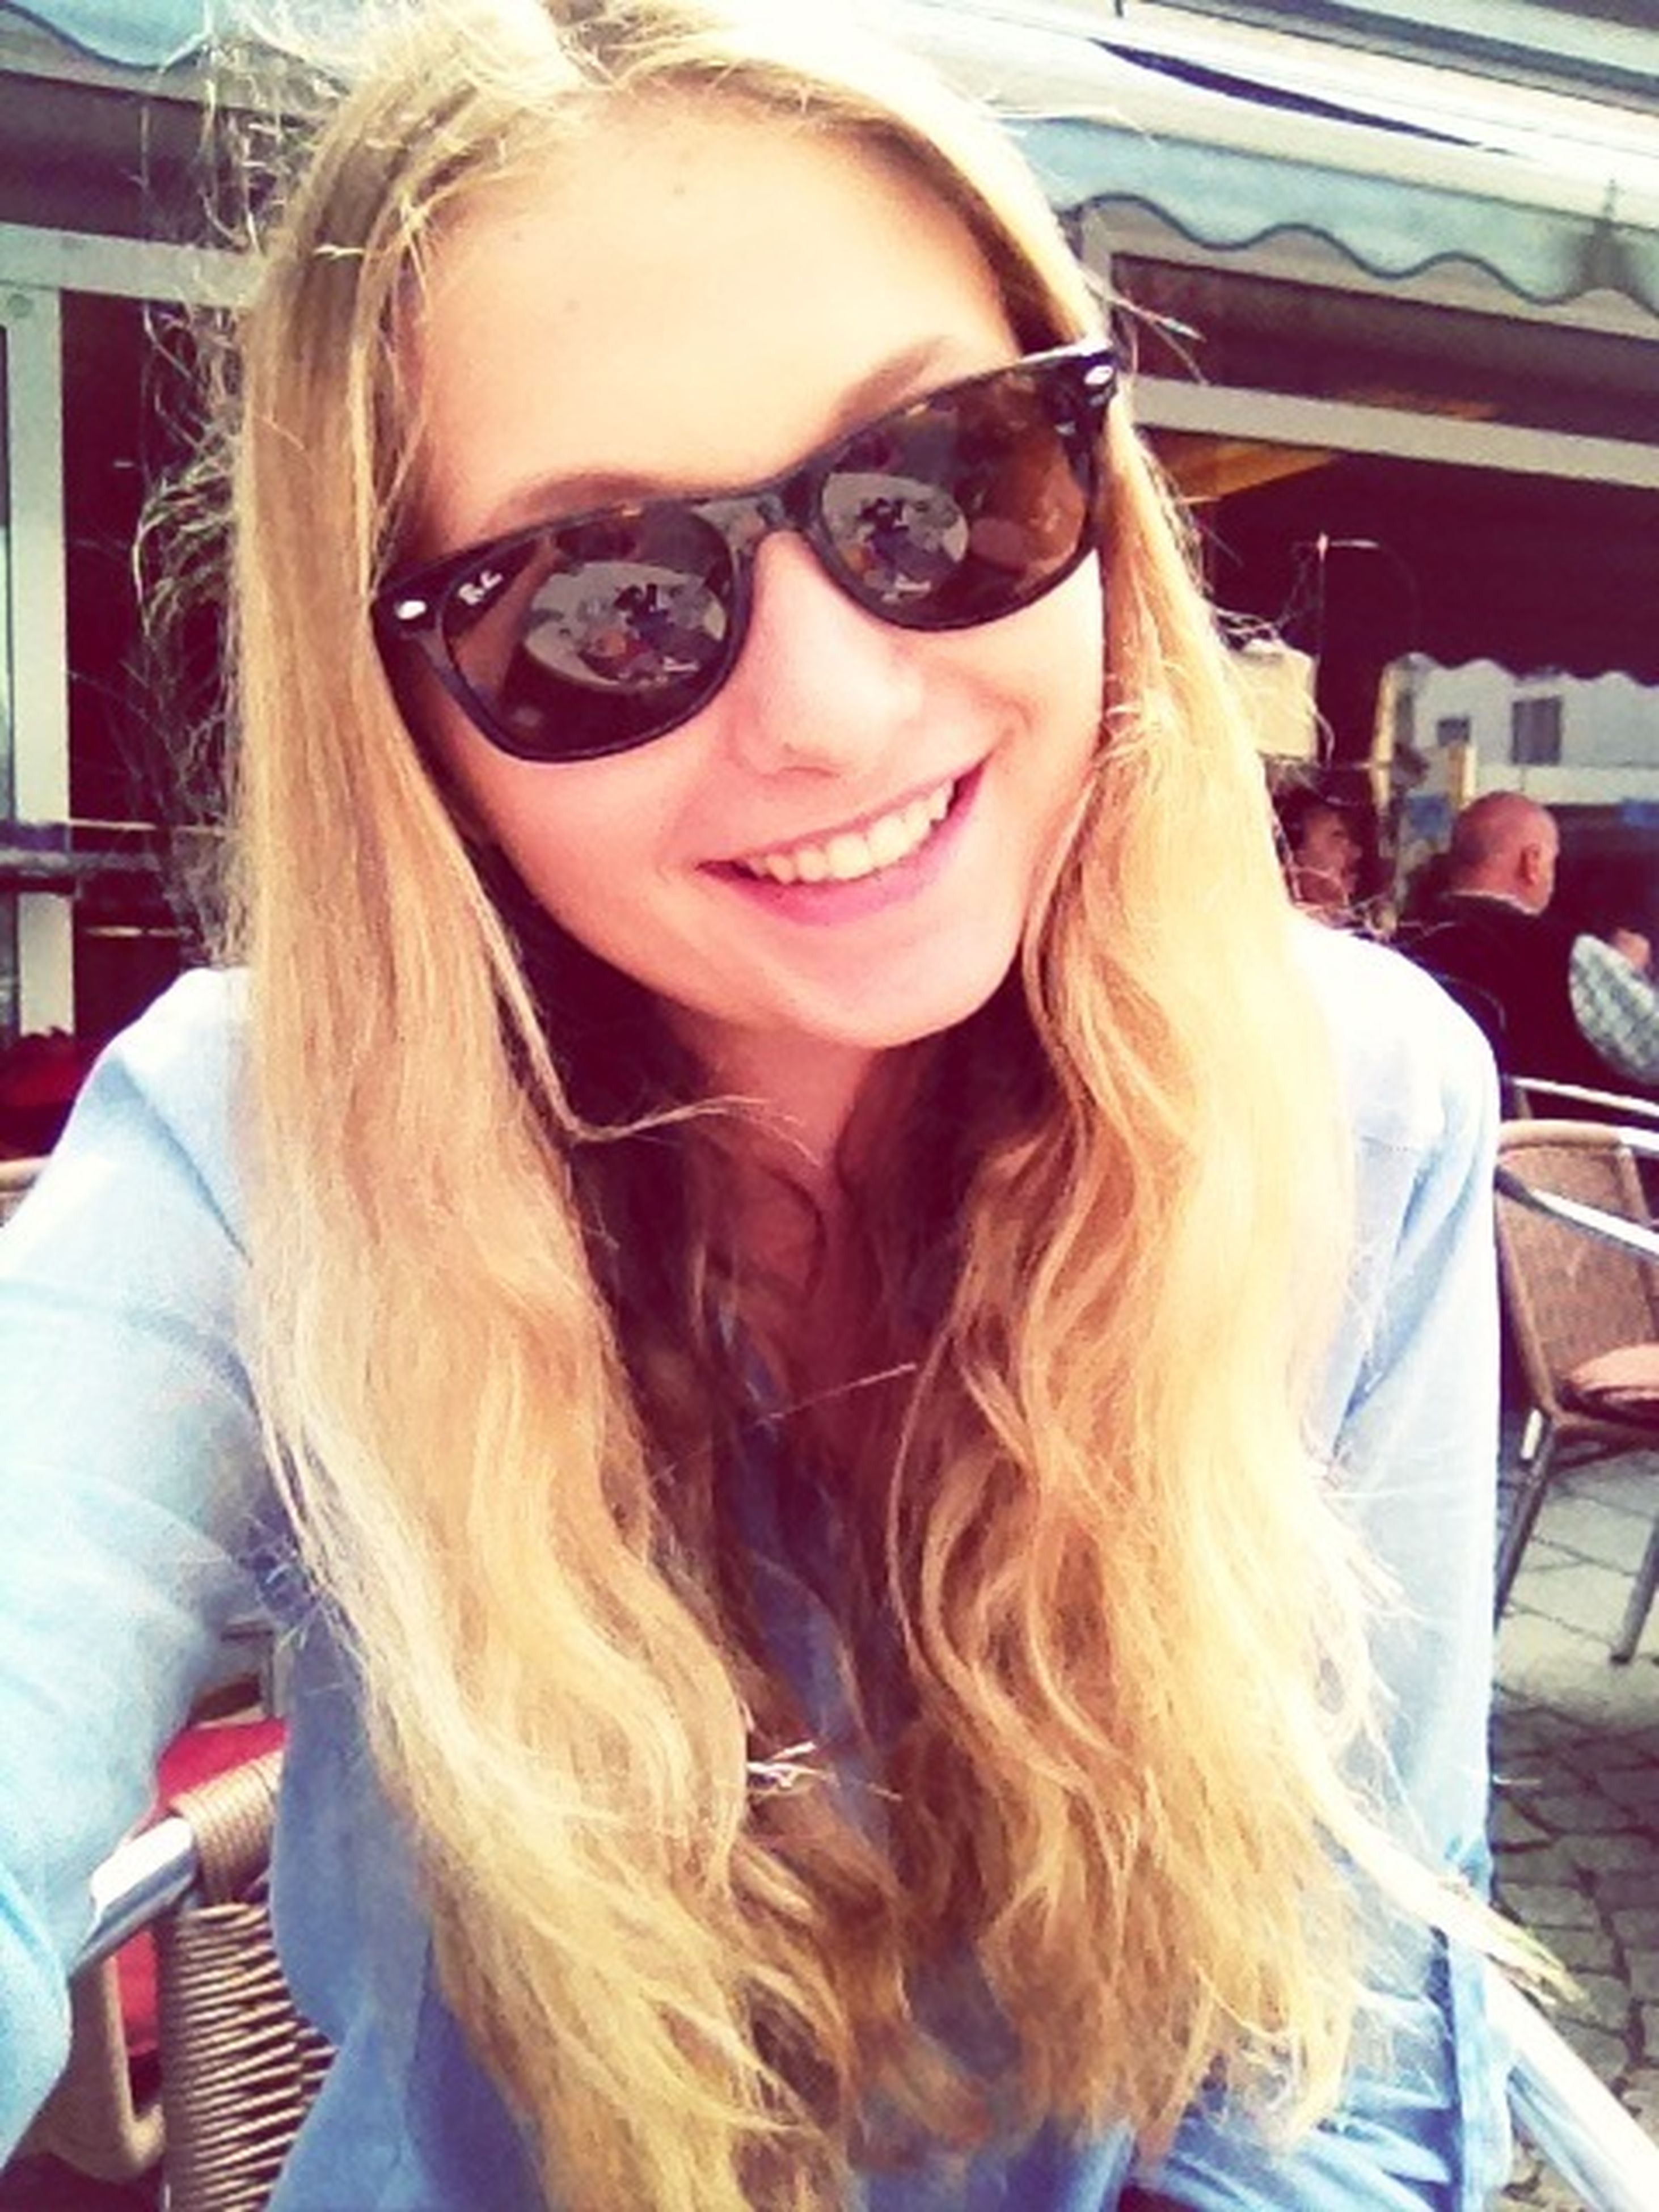 young adult, young women, portrait, looking at camera, person, long hair, lifestyles, sunglasses, front view, smiling, leisure activity, casual clothing, headshot, blond hair, toothy smile, indoors, happiness